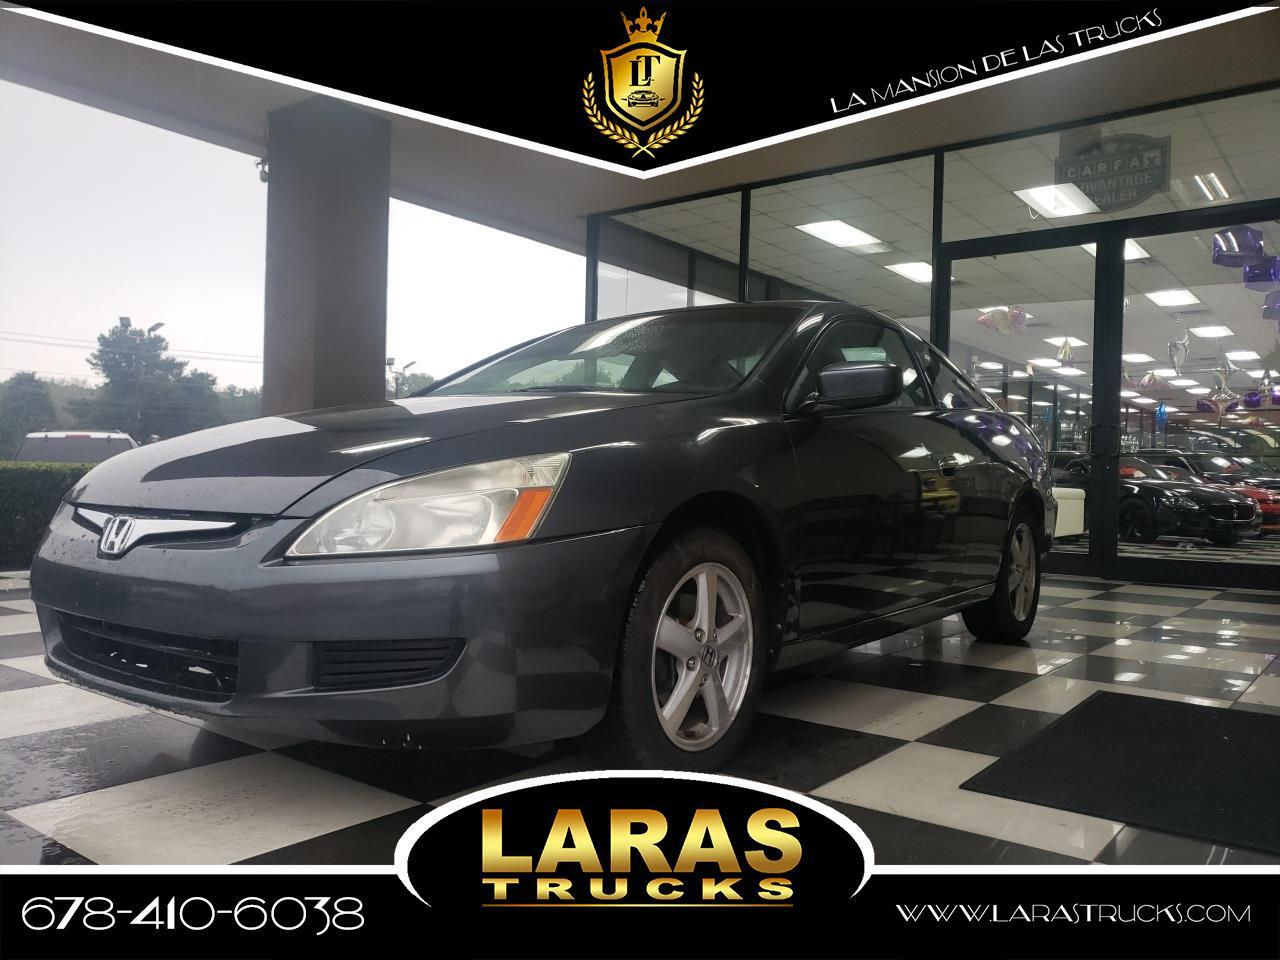 2005 Honda Accord Cpe LX SE AT